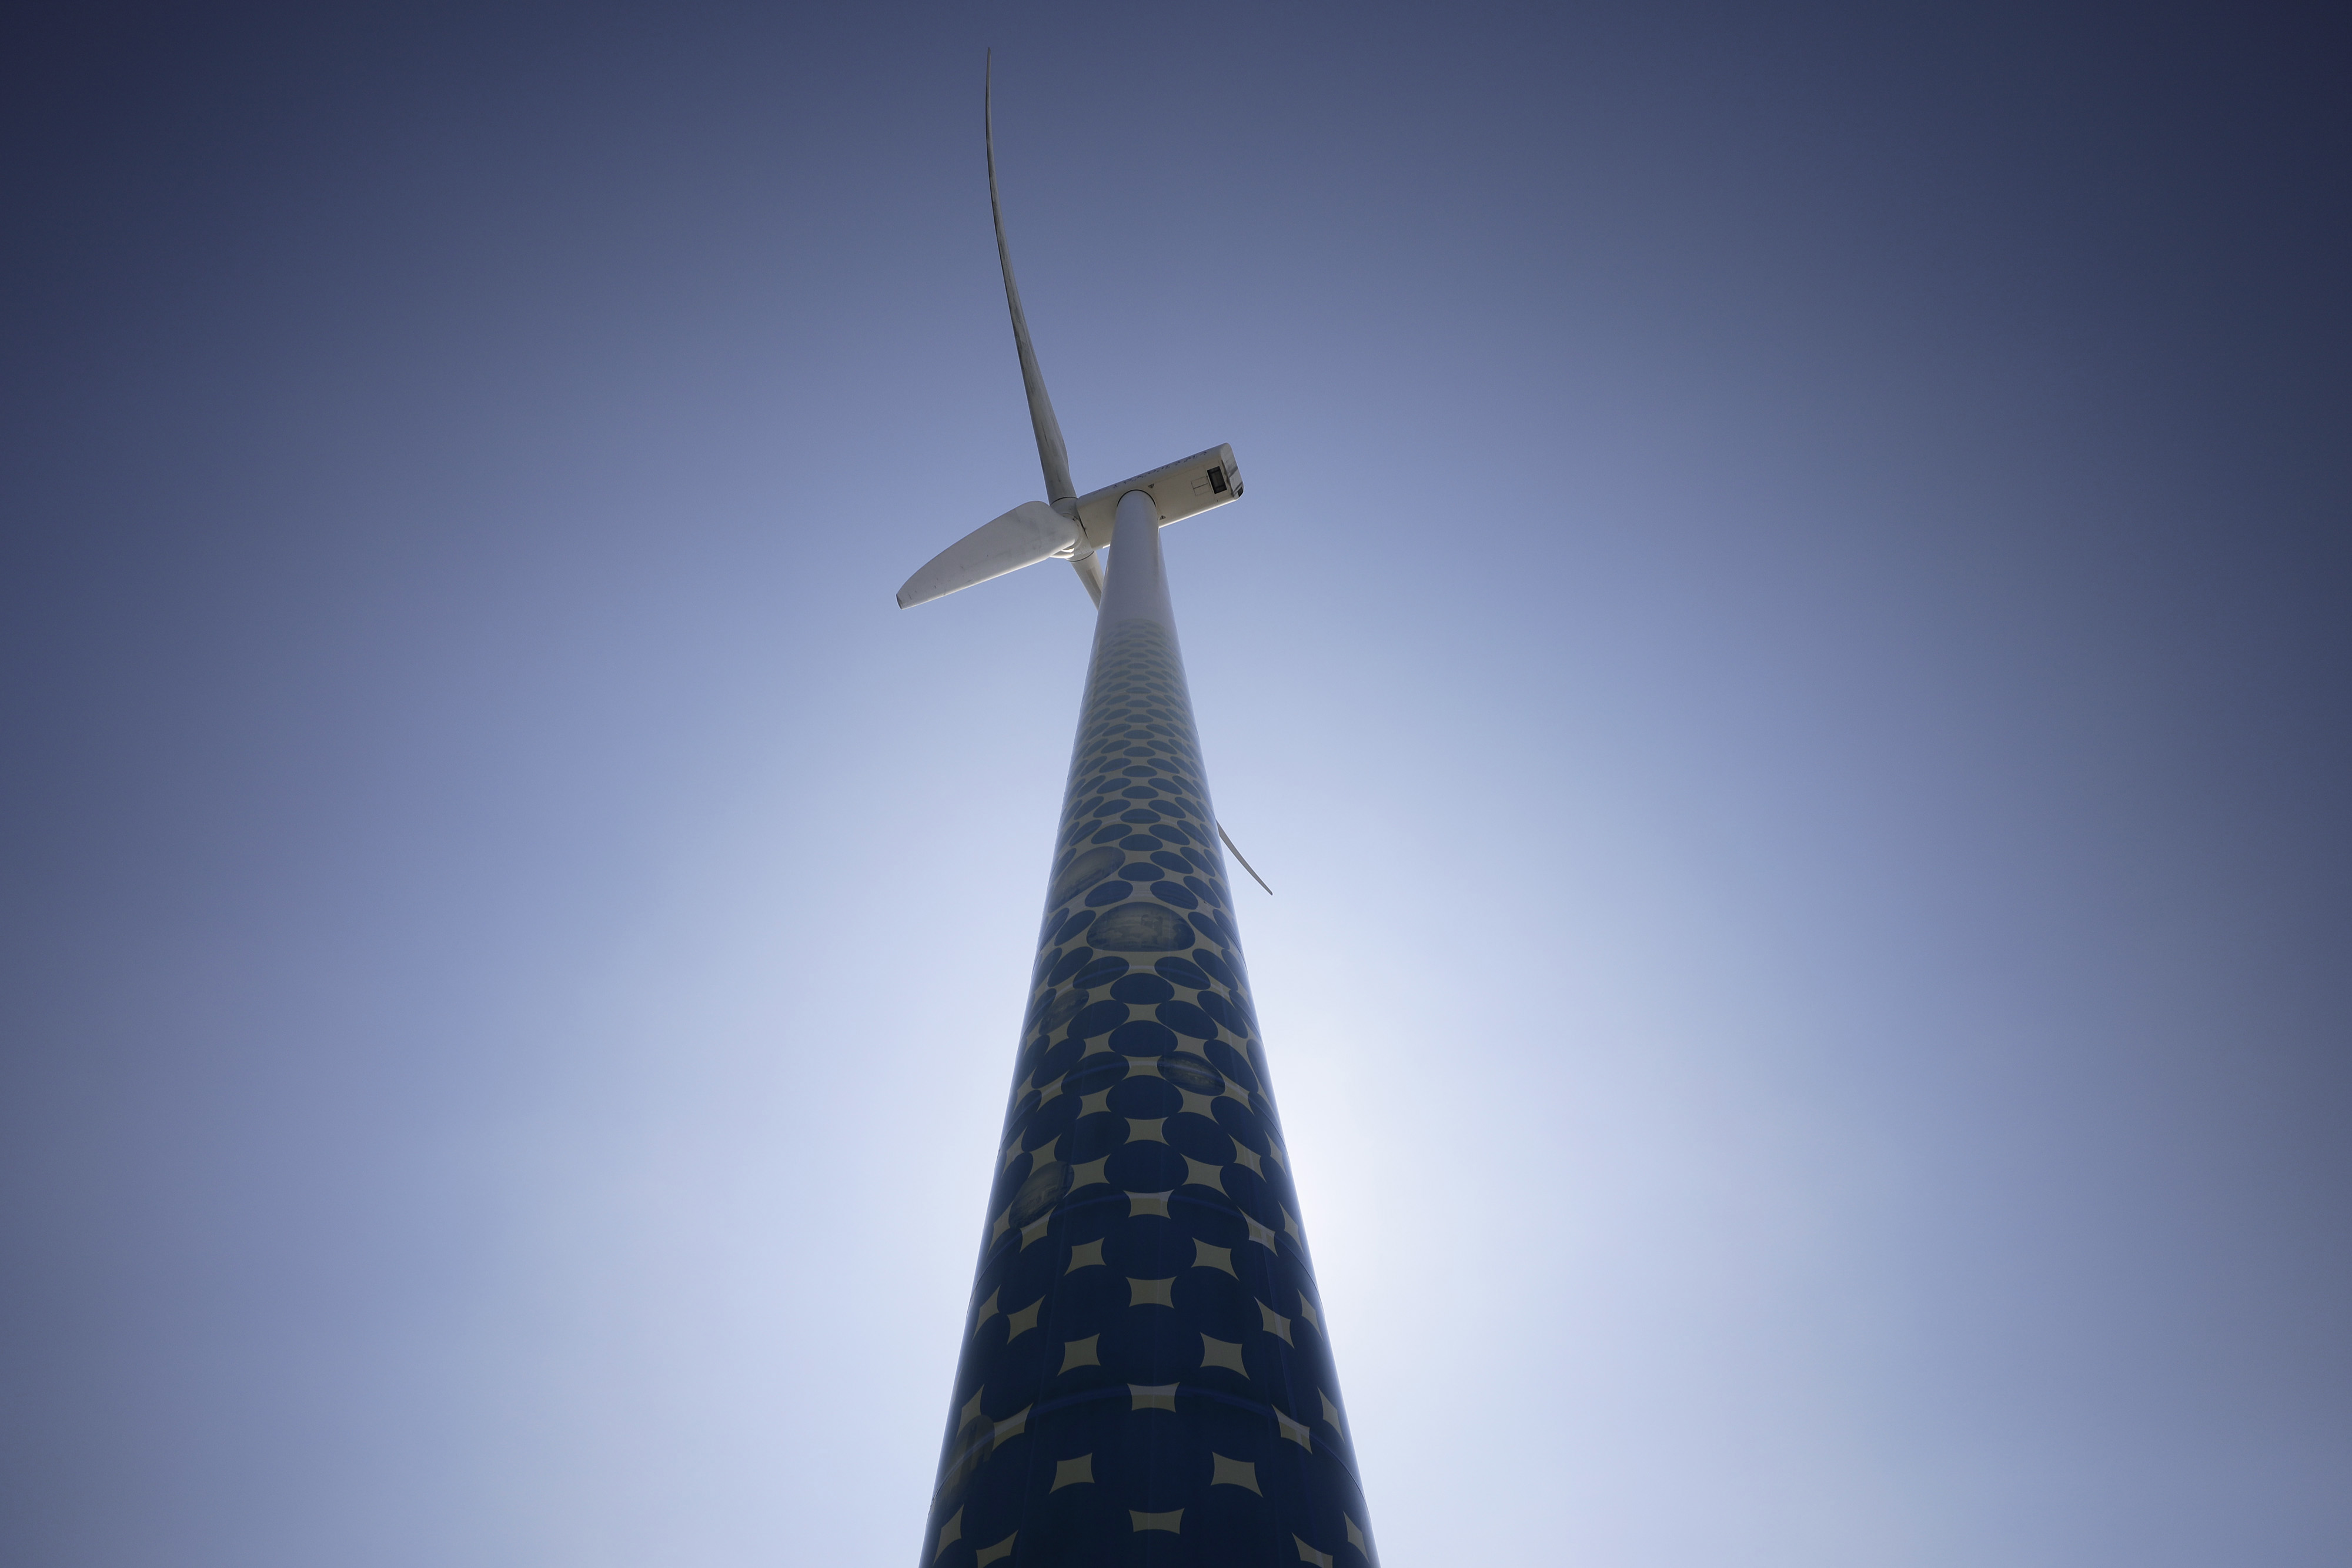 A wind turbine operates at a wind power plant during a demonstration of a hydrogen supply chain system in Yokohama, Japan.